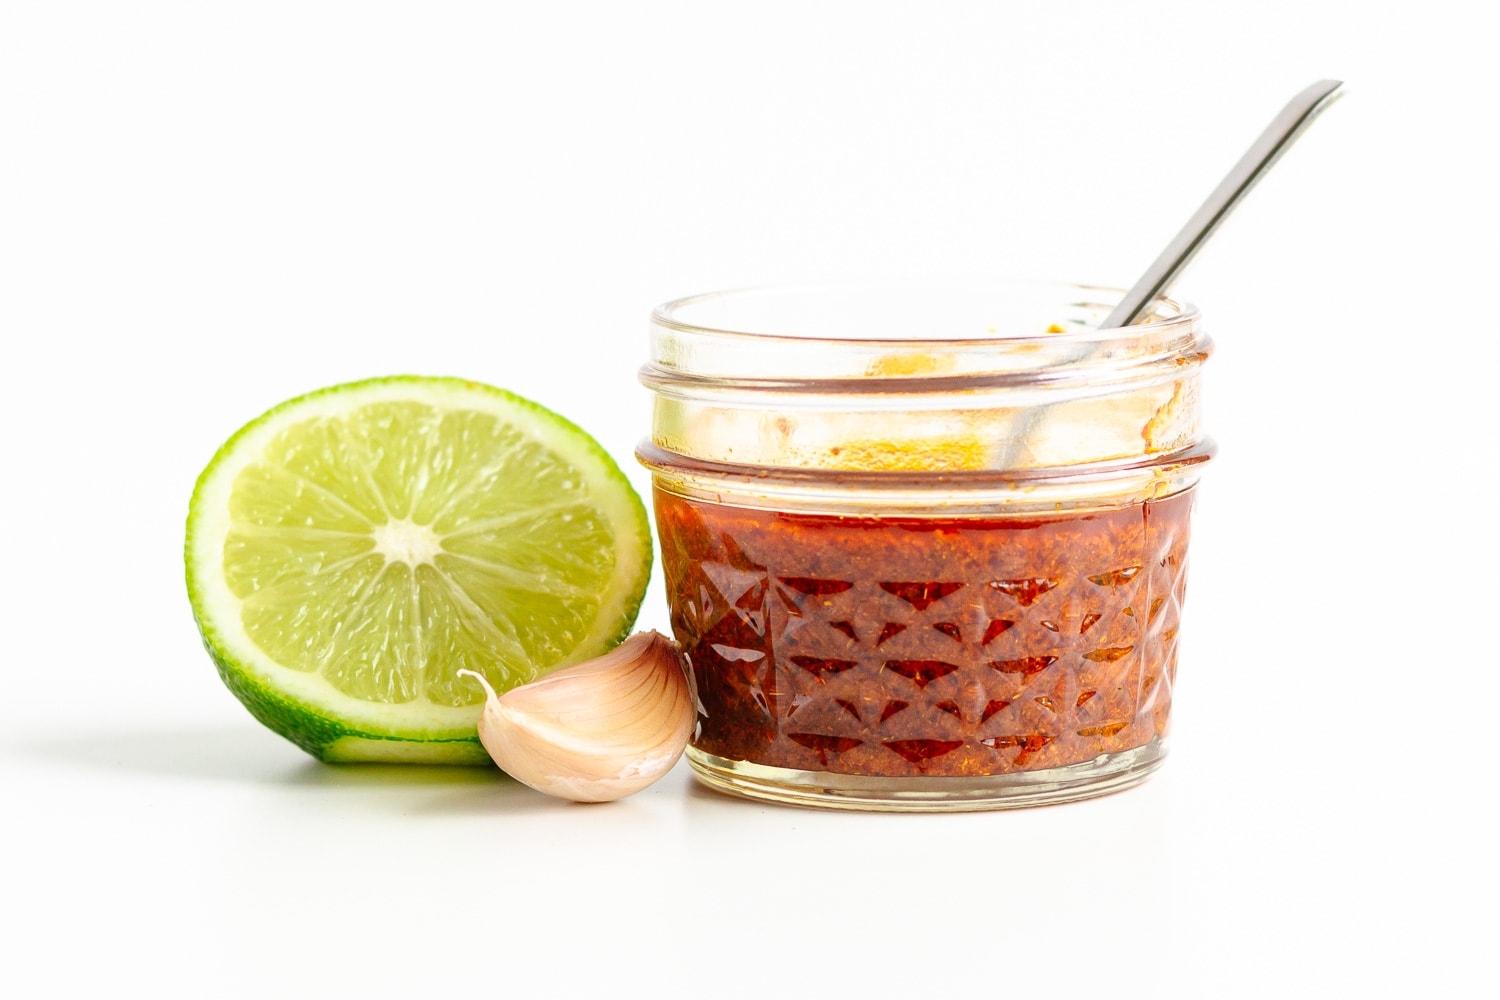 Small jar of fajita marinade with half a lime and a garlic clove next to it.